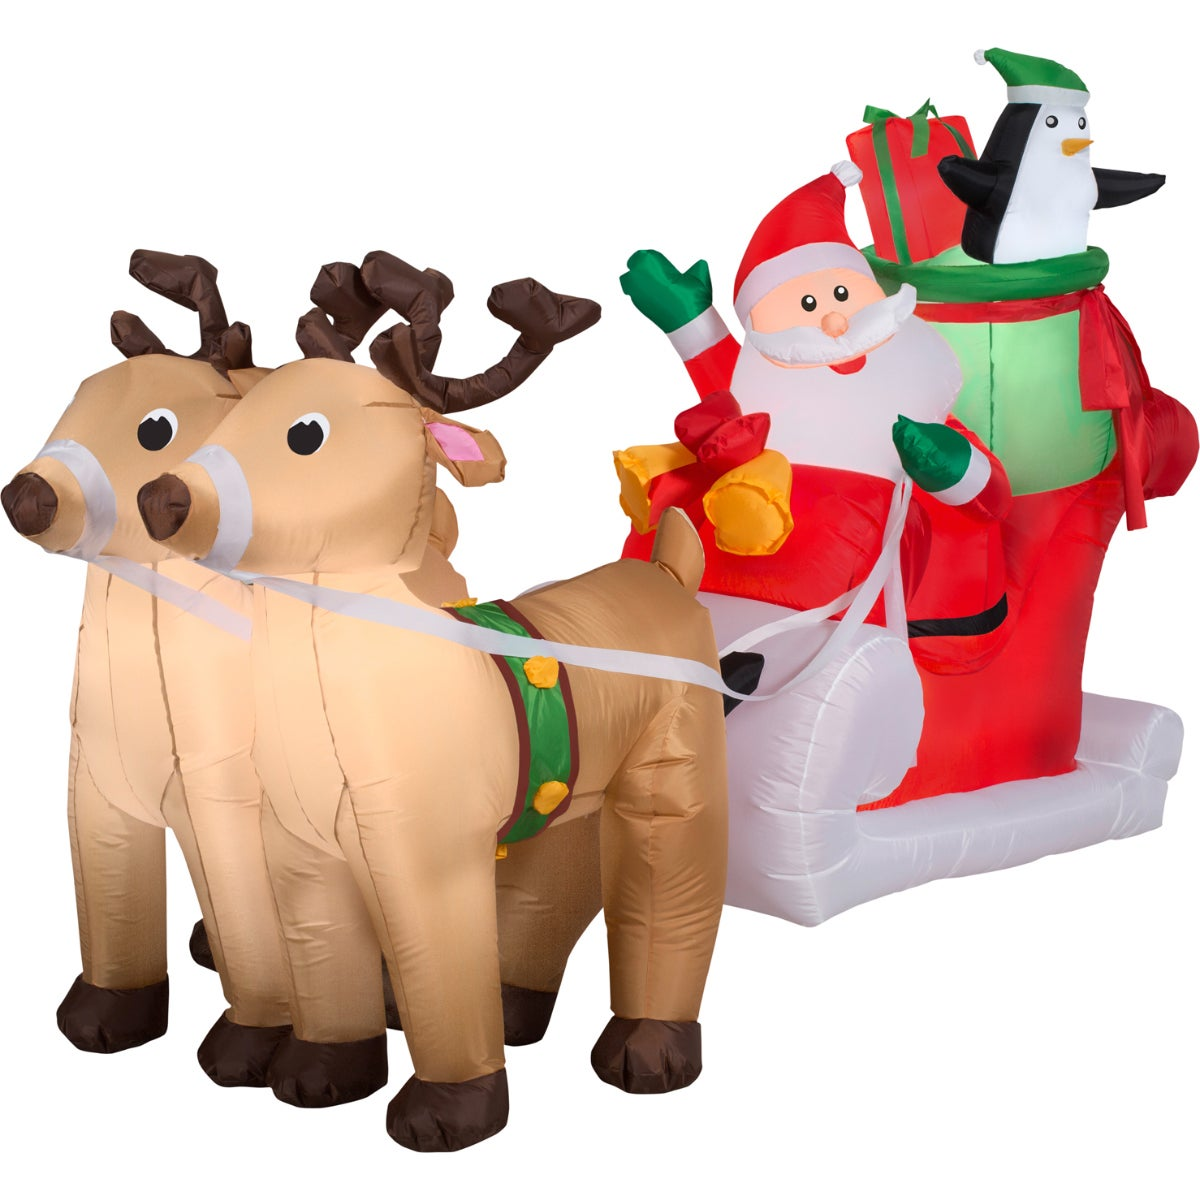 Gemmy Christmas Inflatables 2019.Buy Gemmy Christmas Inflatable Decorations Online At